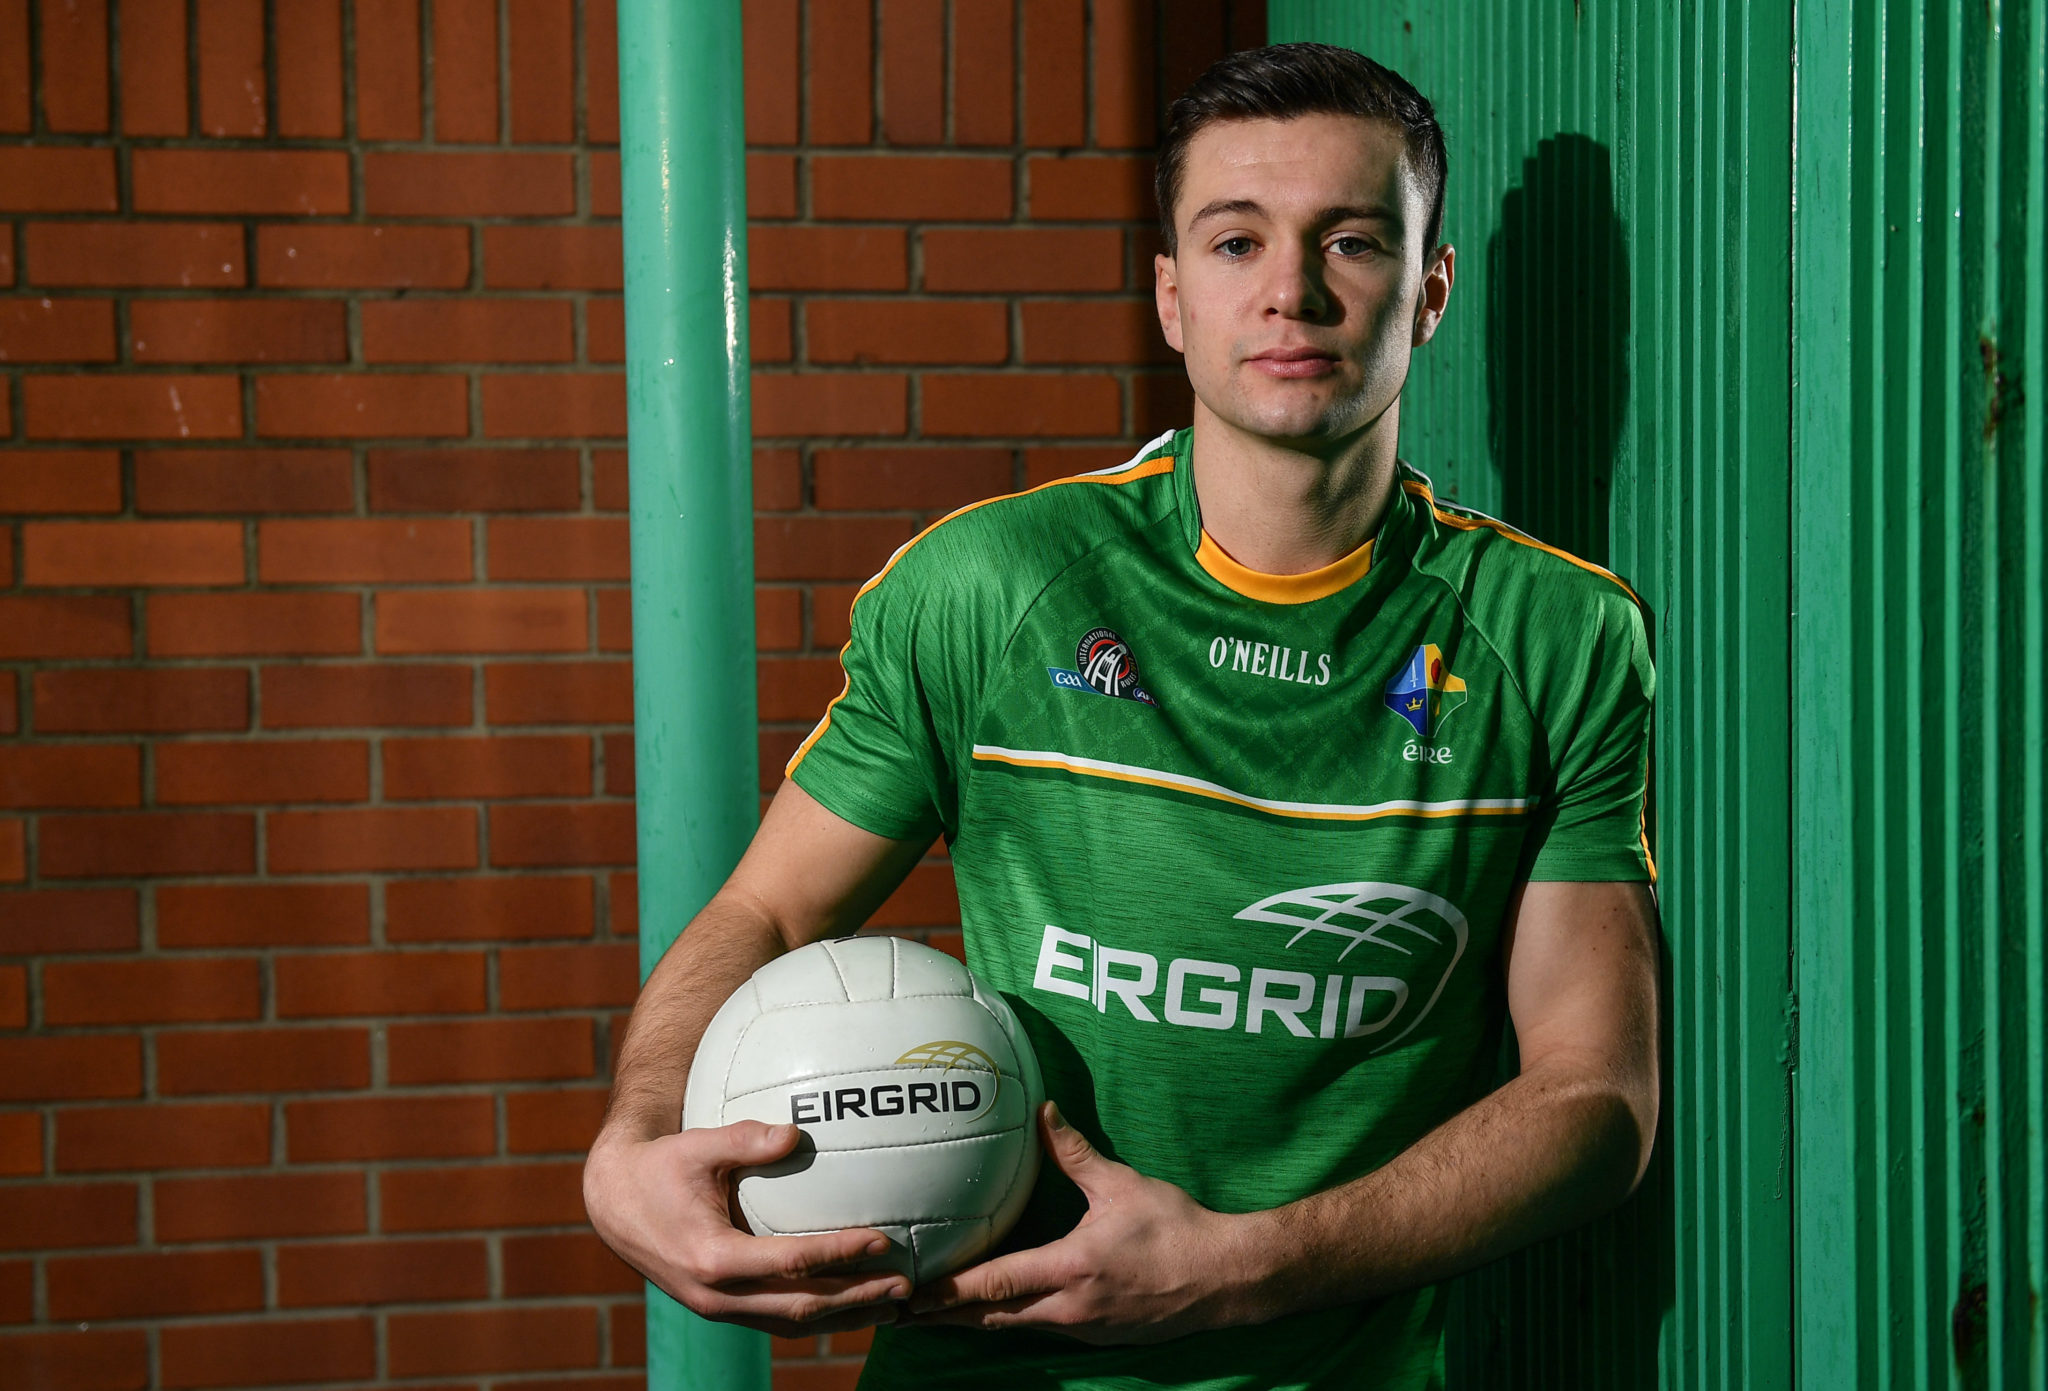 In attendance at the announcement of EirGrid as team sponsor for the International Rules side that will travel to Australia over the two-test series in November is Ireland International Rules player Conor McKenna